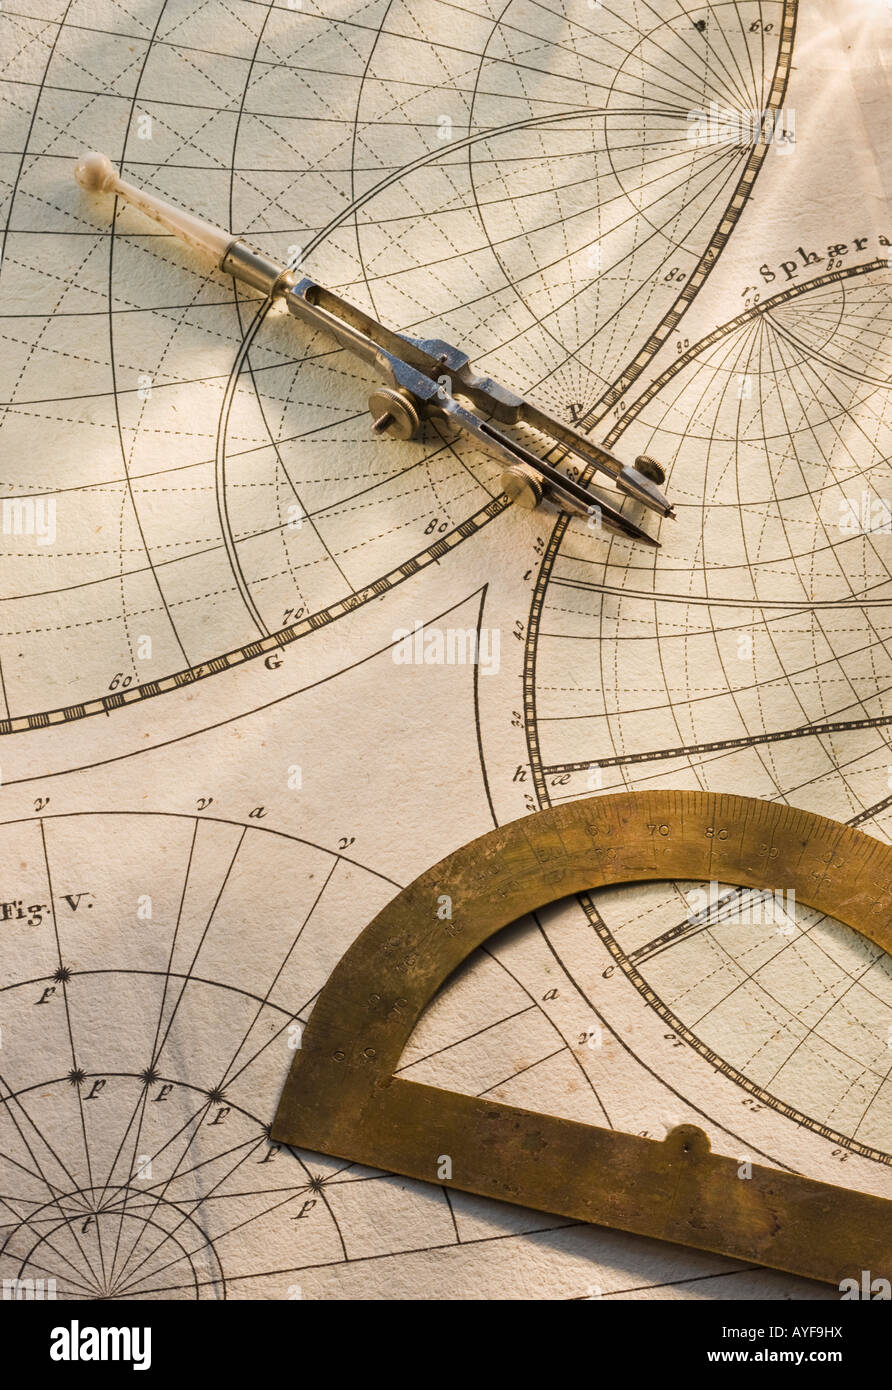 Protractor and drafting compass on antique map